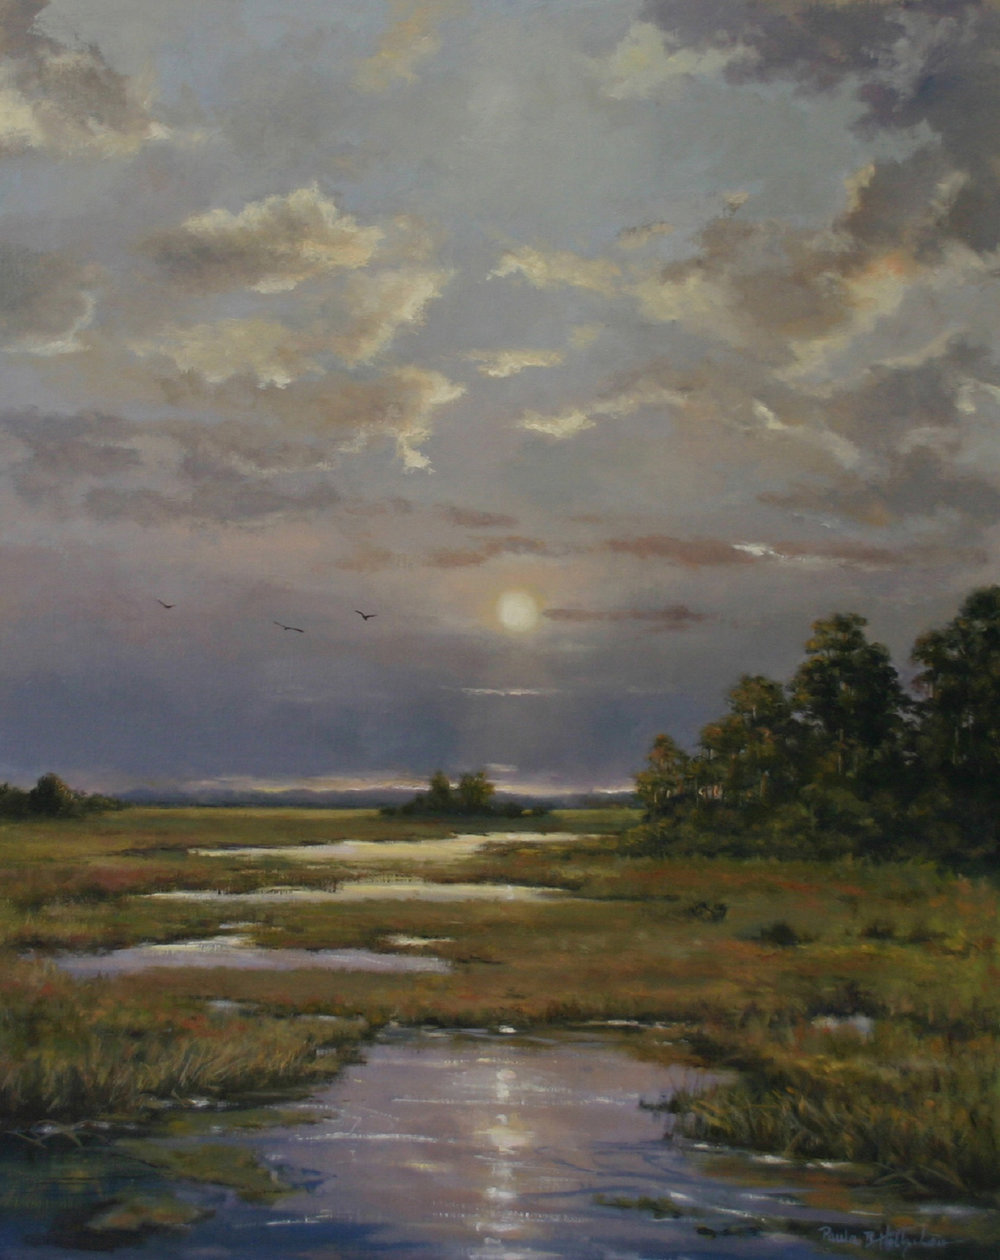 34 - Moonlit Creek, 30 x 24, Oil